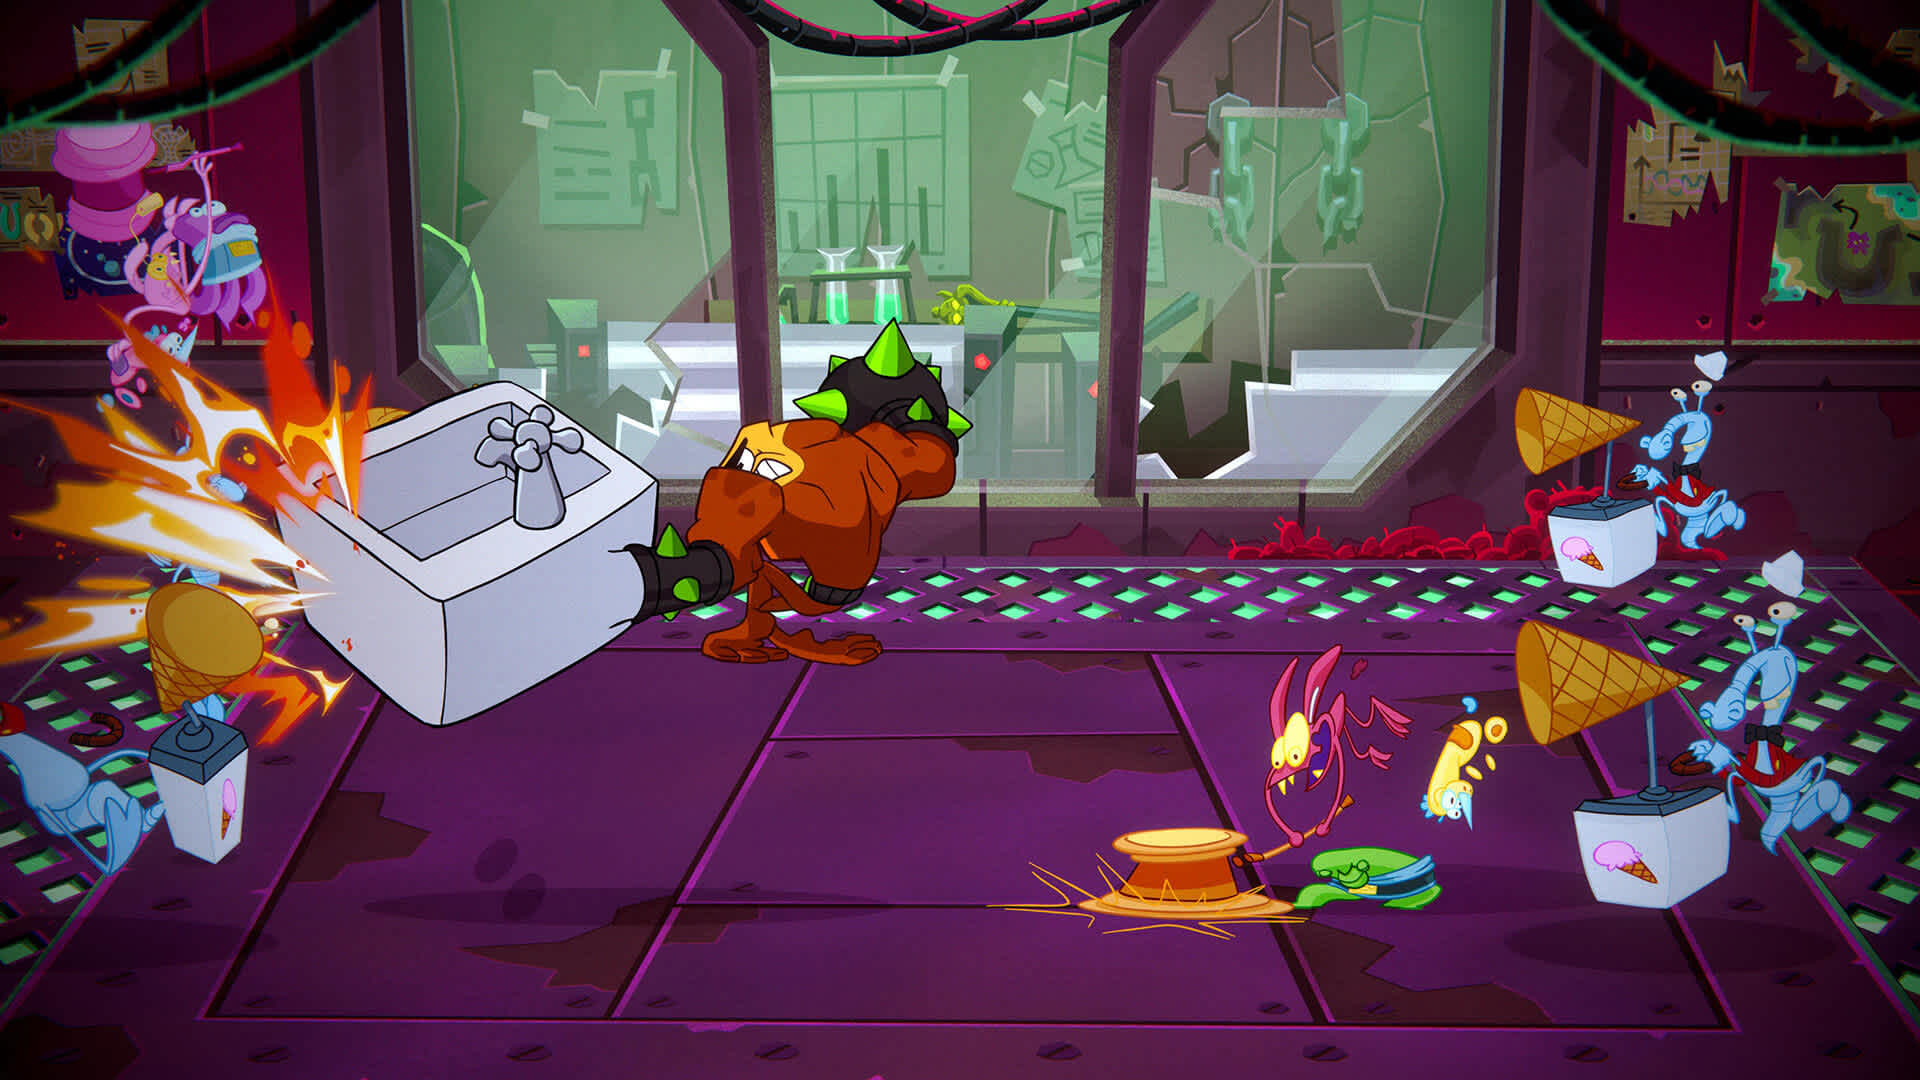 Battletoads 2D Coop gets a bit visual heavy